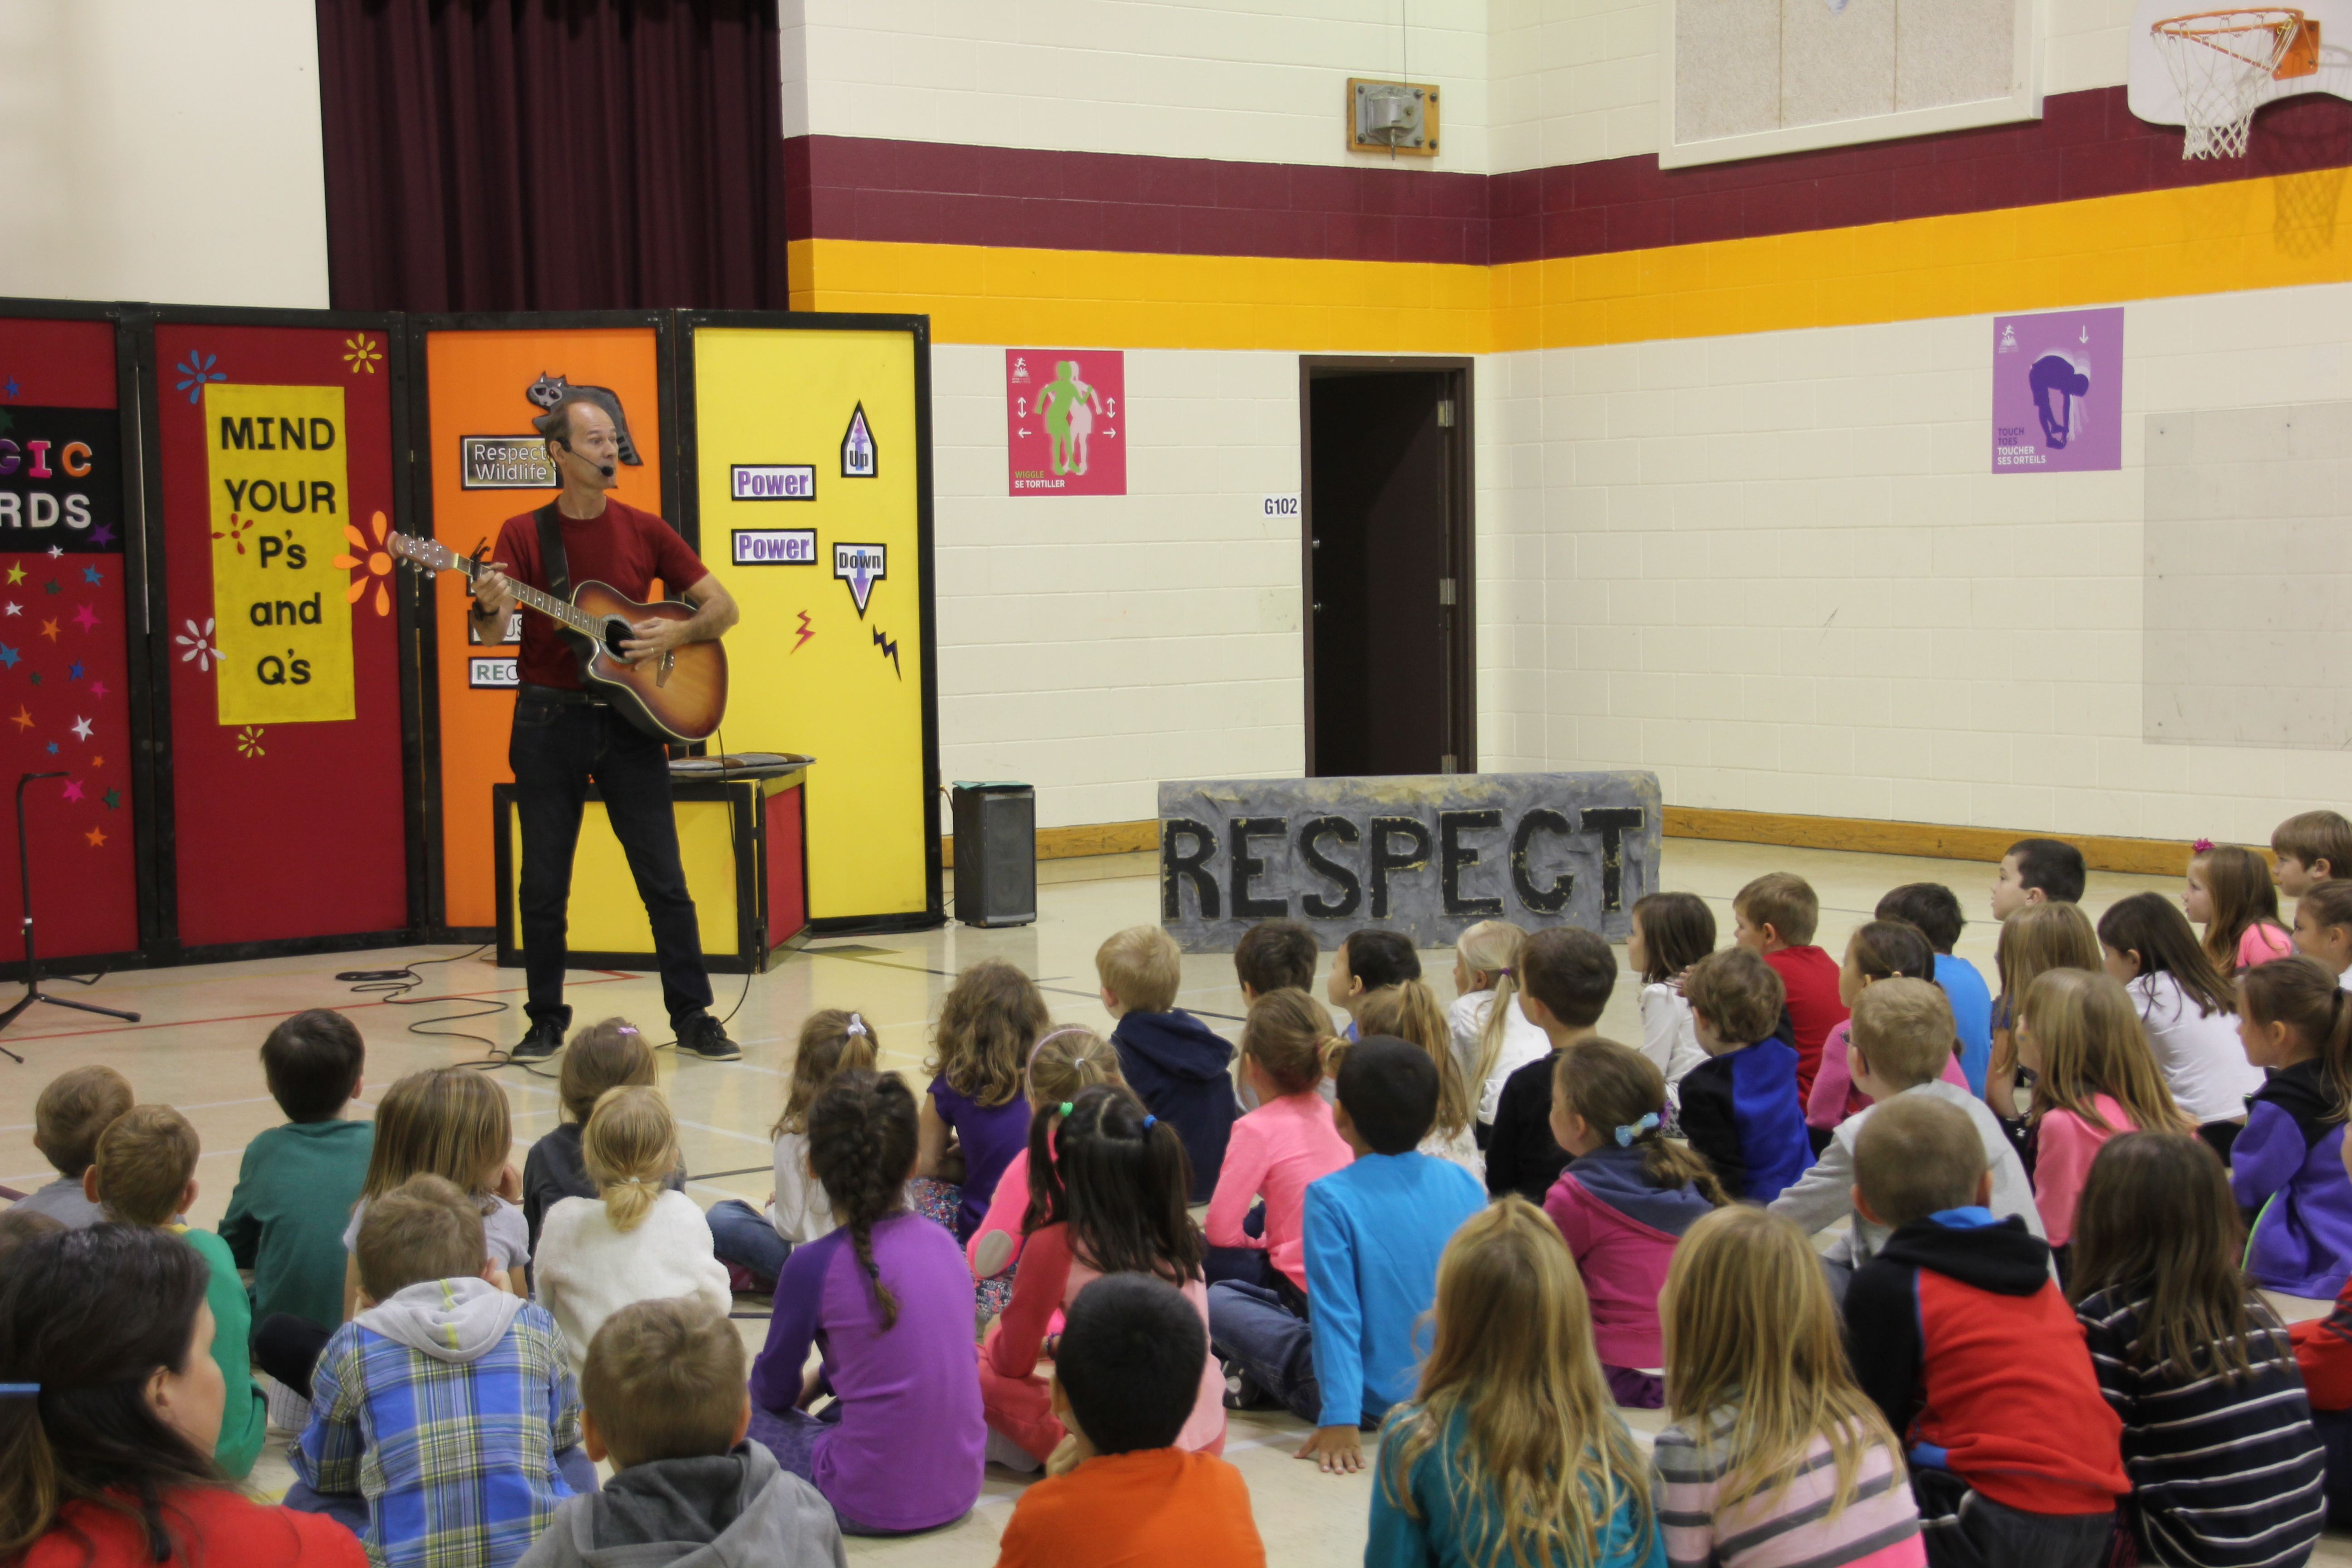 Gerry Mitchell performing for a group of students.